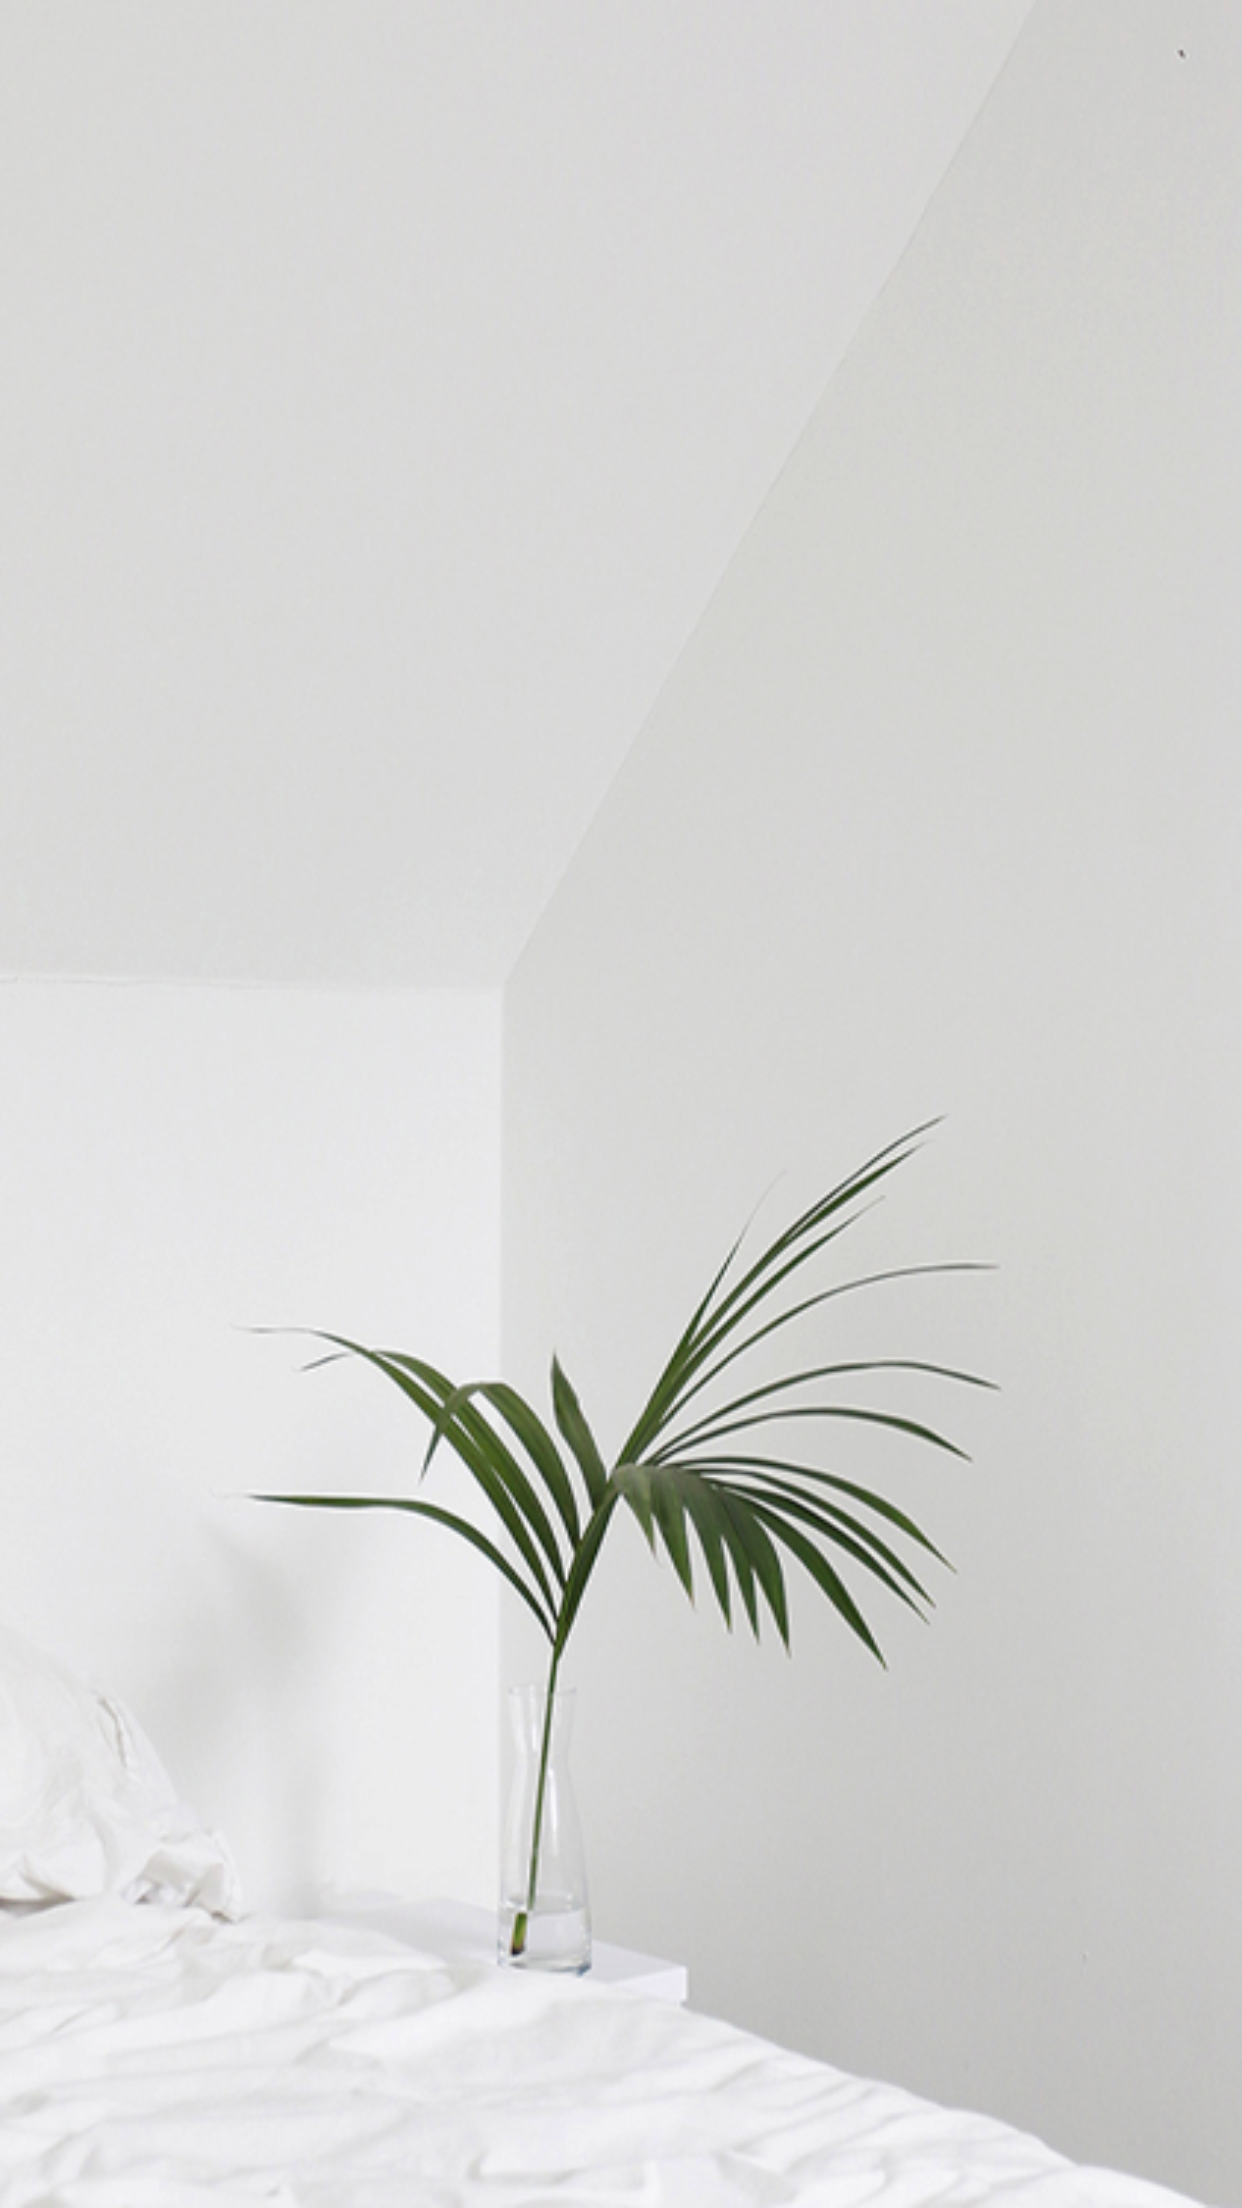 Pin by kiddgnarly on iPhone wallpapers Plant wallpaper